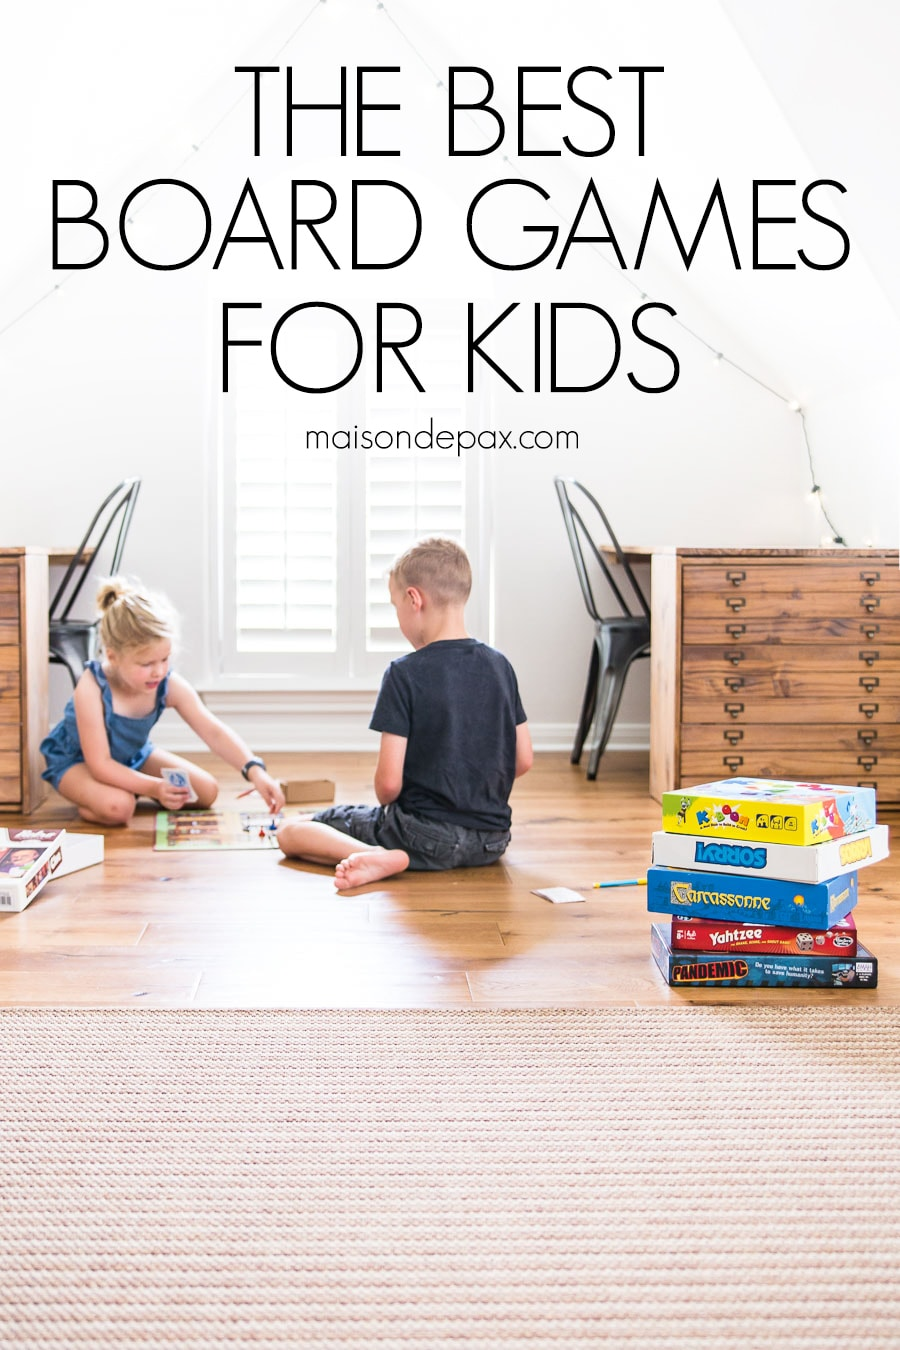 boy and girl playing board games on floor with overlay: the best board games for kids | maisondepax.com